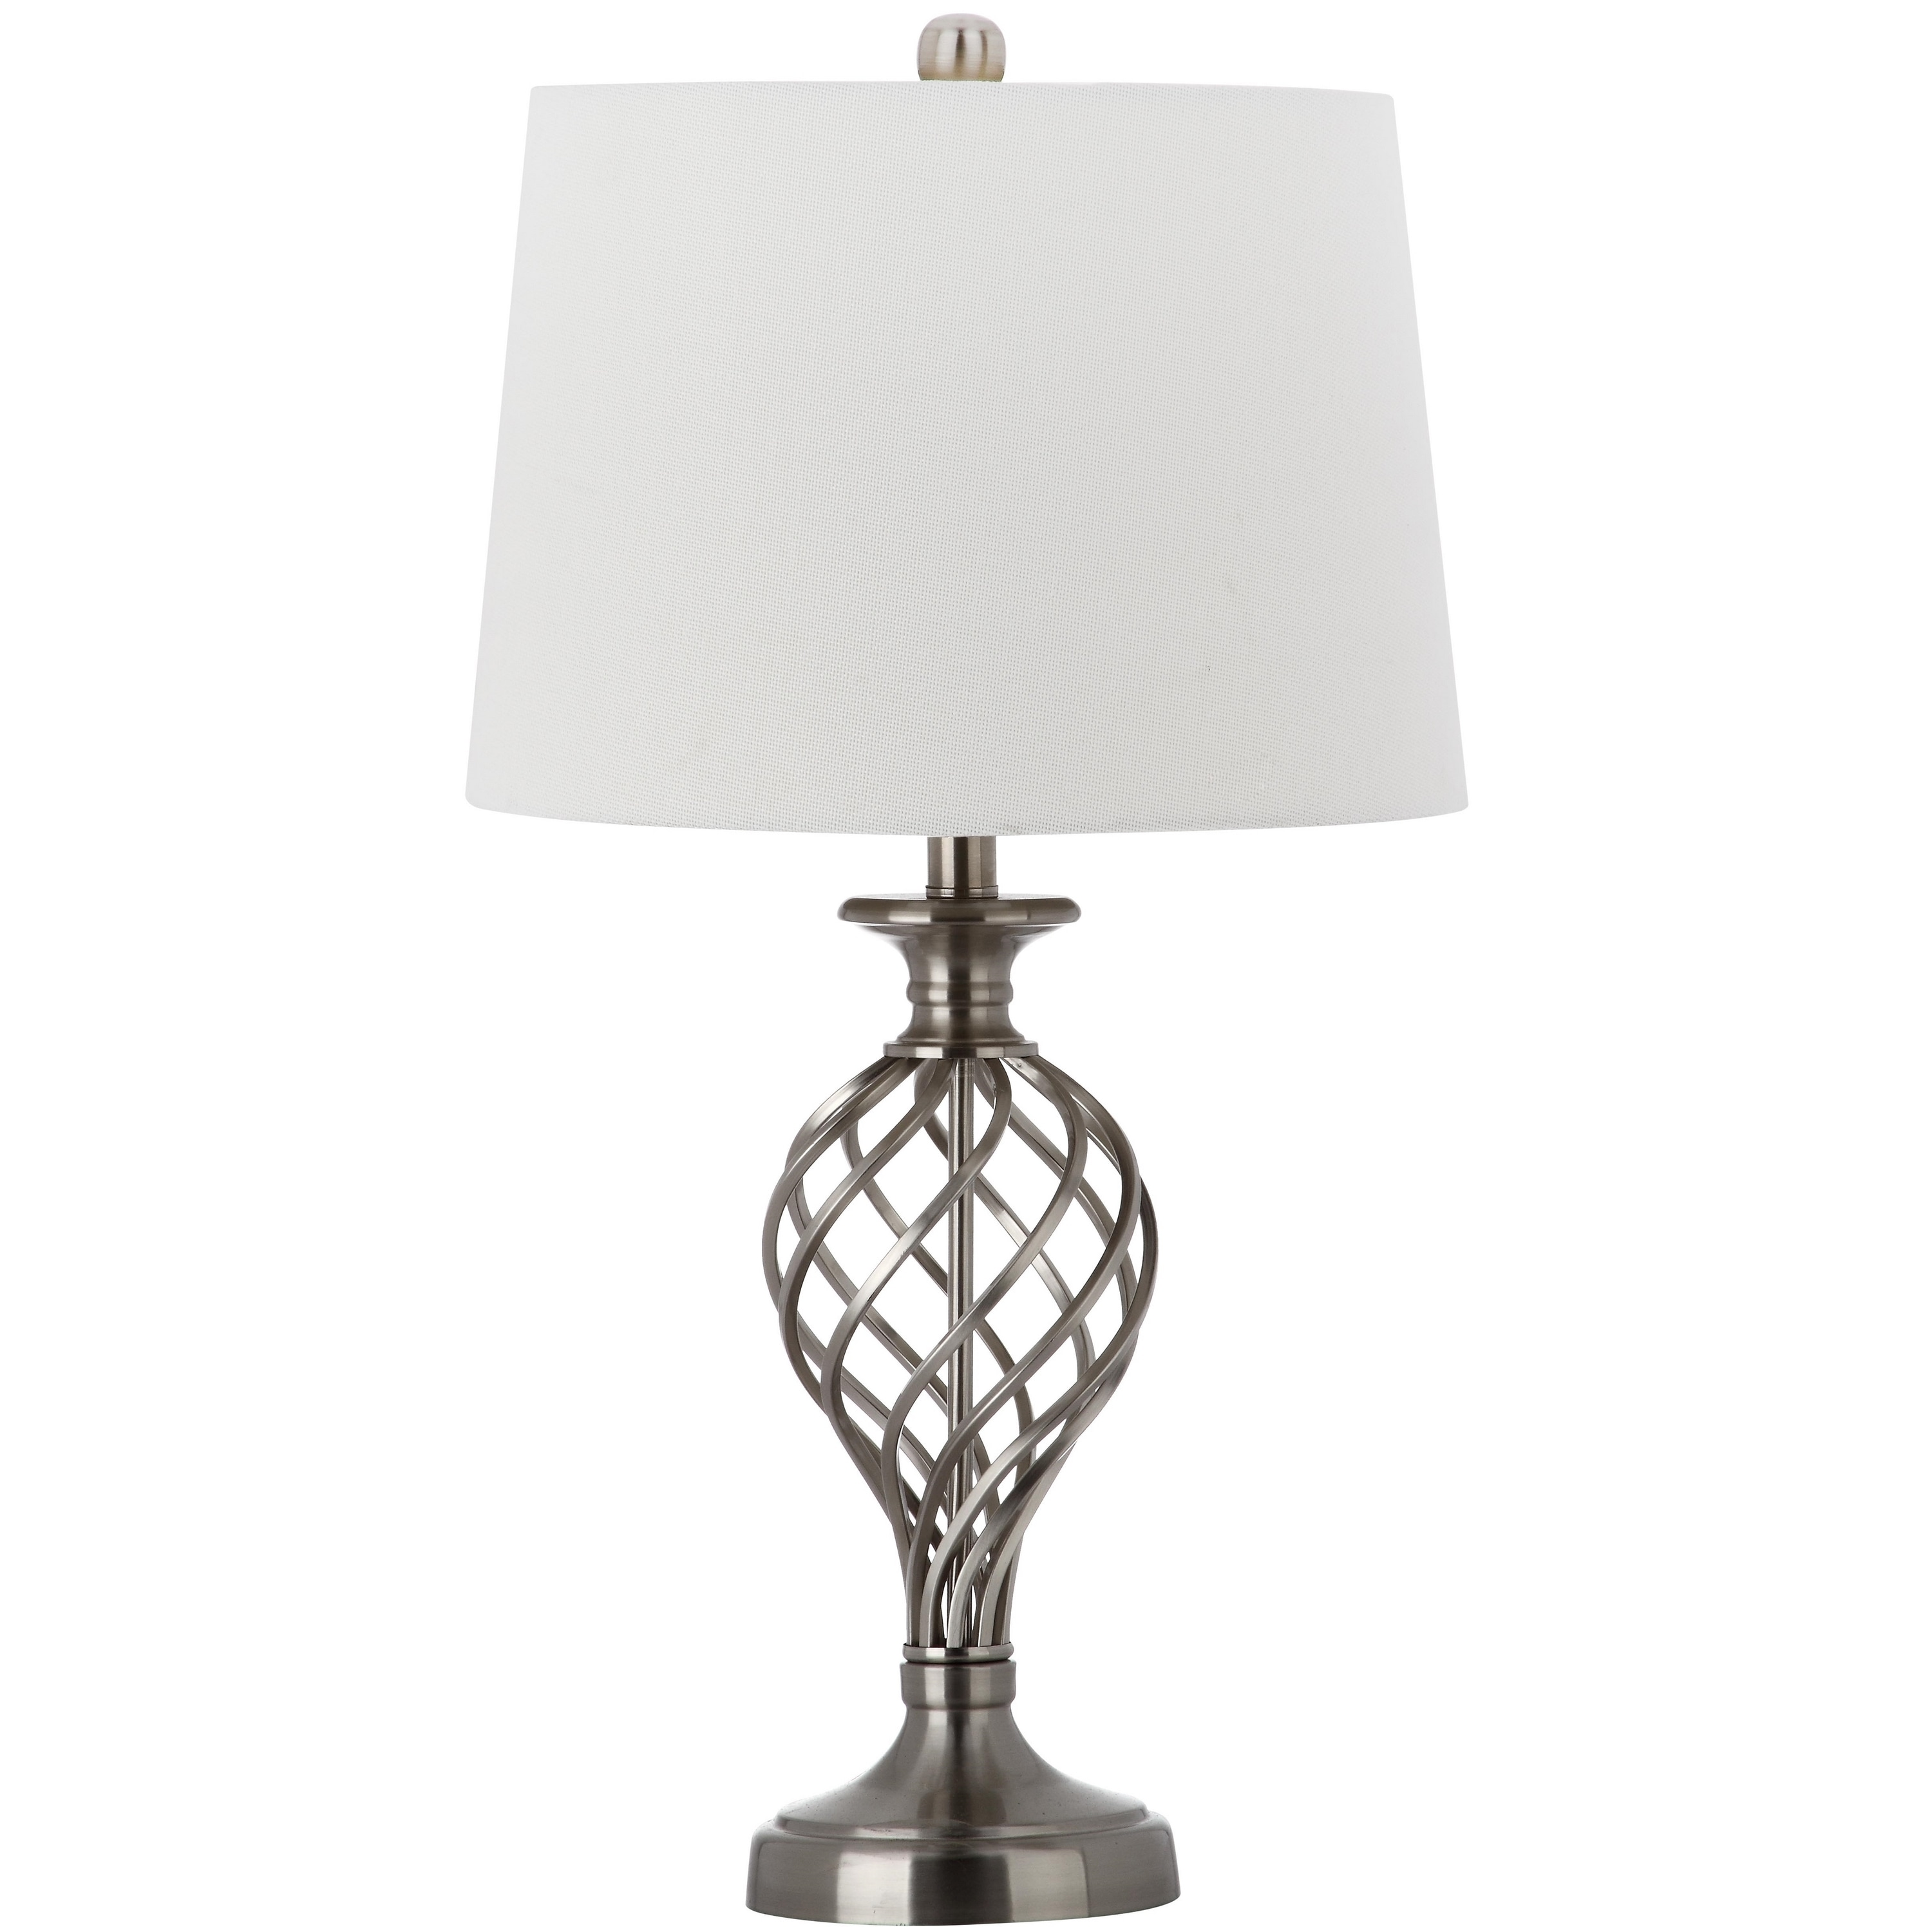 Shop Safavieh Lighting 26 75 Inch Lattice Urn Nickel Table Lamp Set